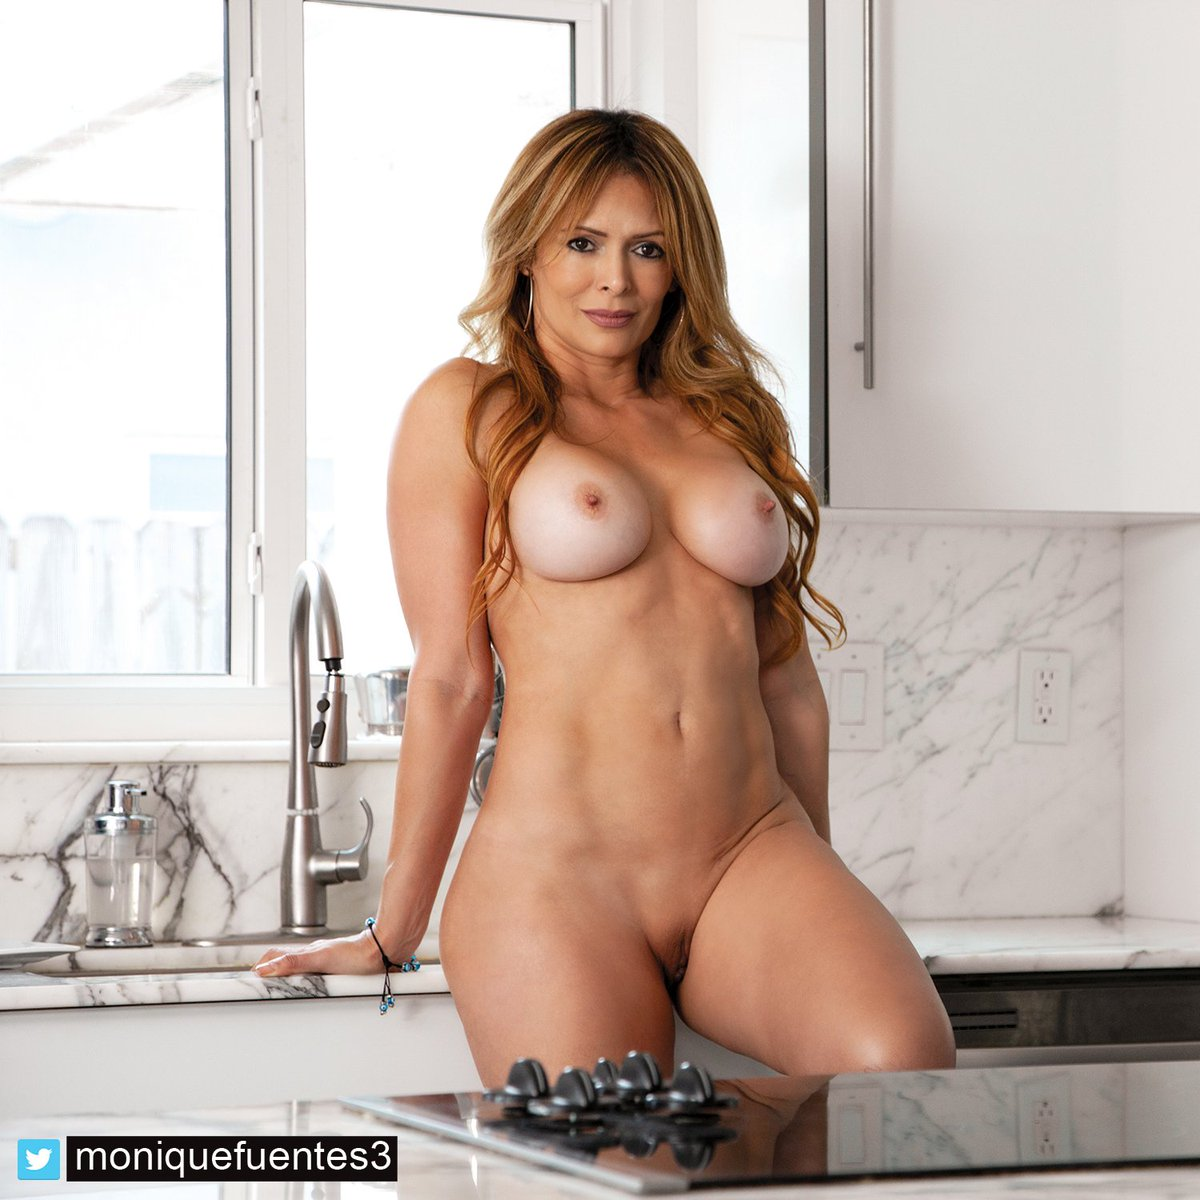 Have a great day! #lovemyfans #milf #kitchen #dildo #manyvids 64Fwogsyf6 O